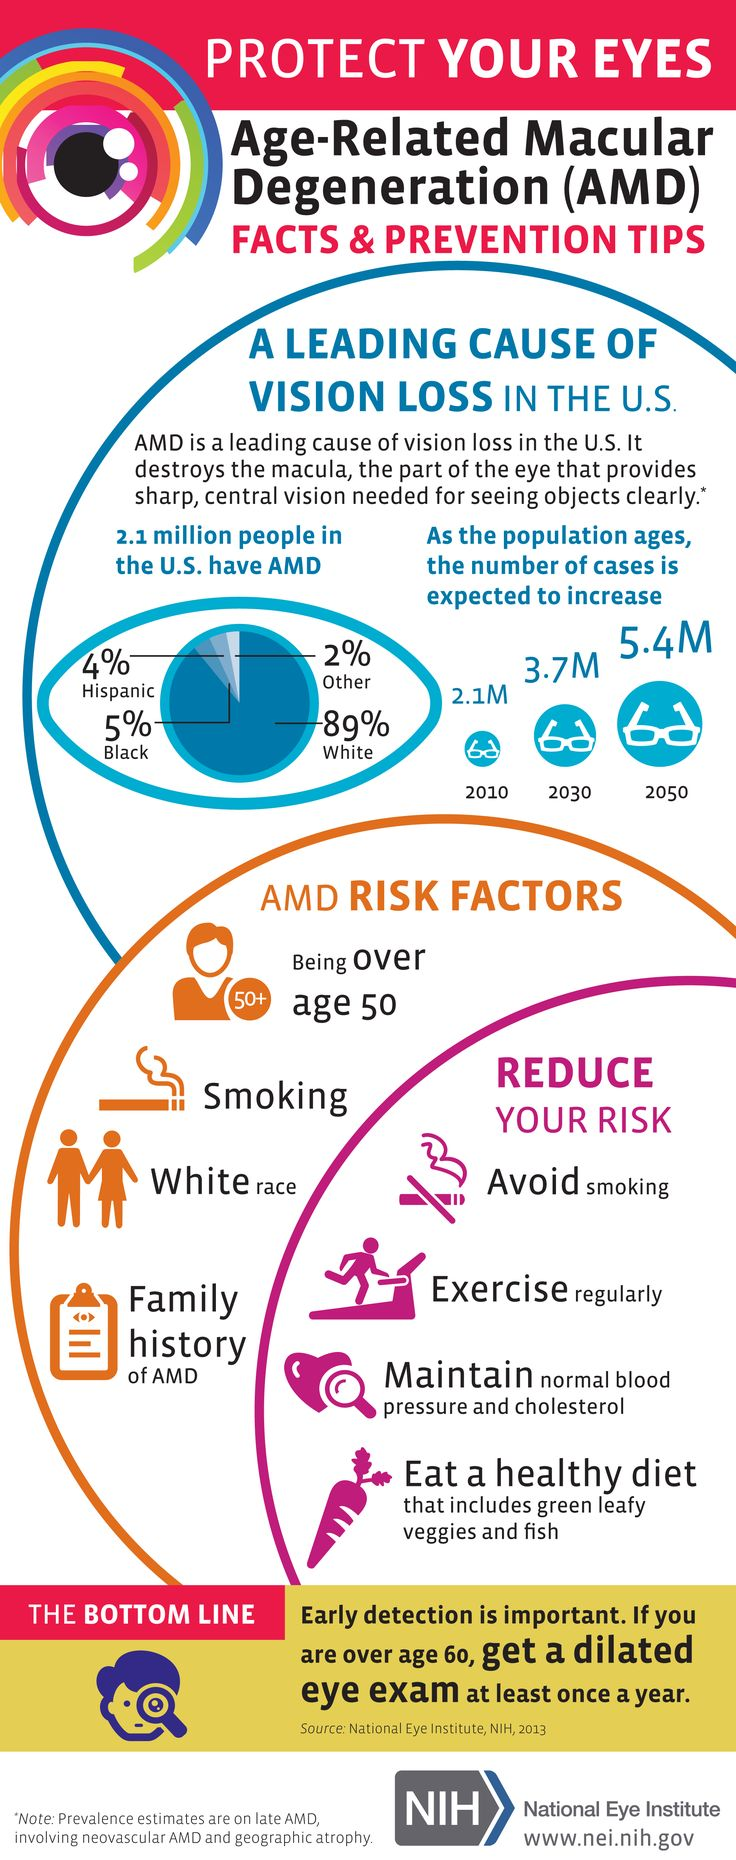 Age-Related Macular Degeneration (AMD): FACTS & PREVENTION TIPS